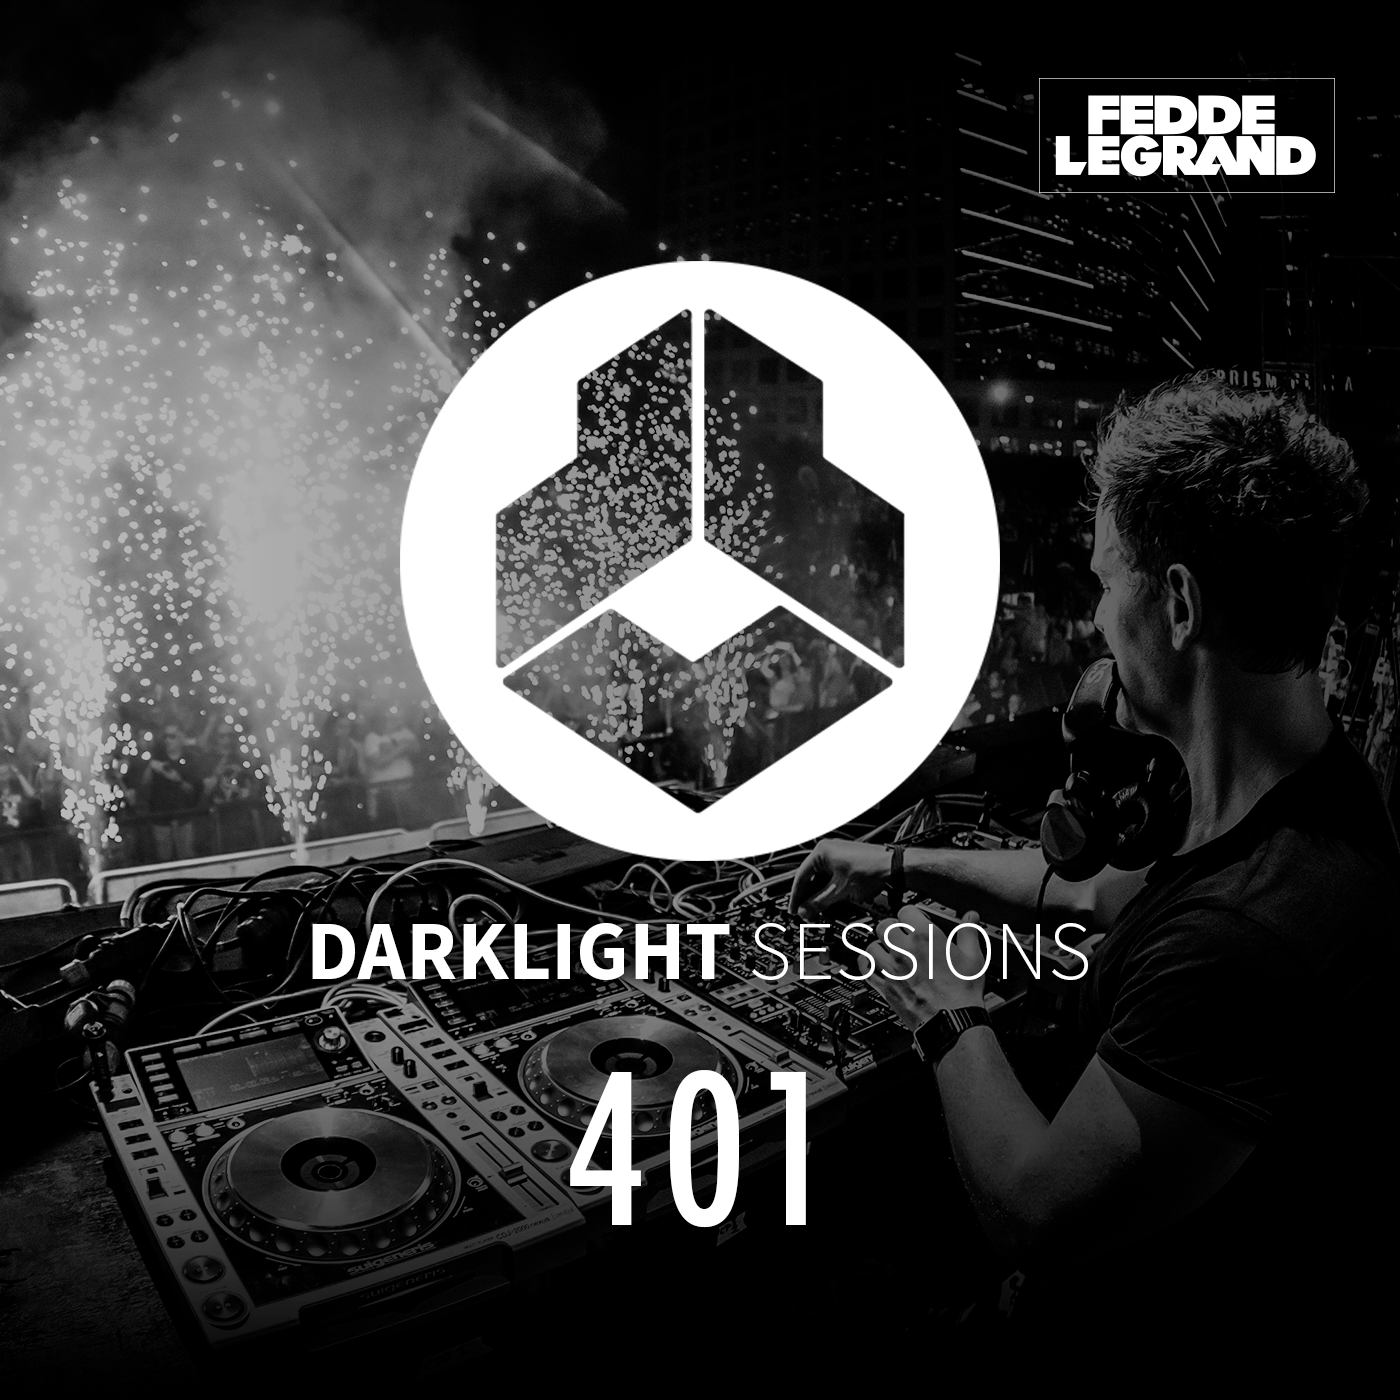 Darklight Sessions 401